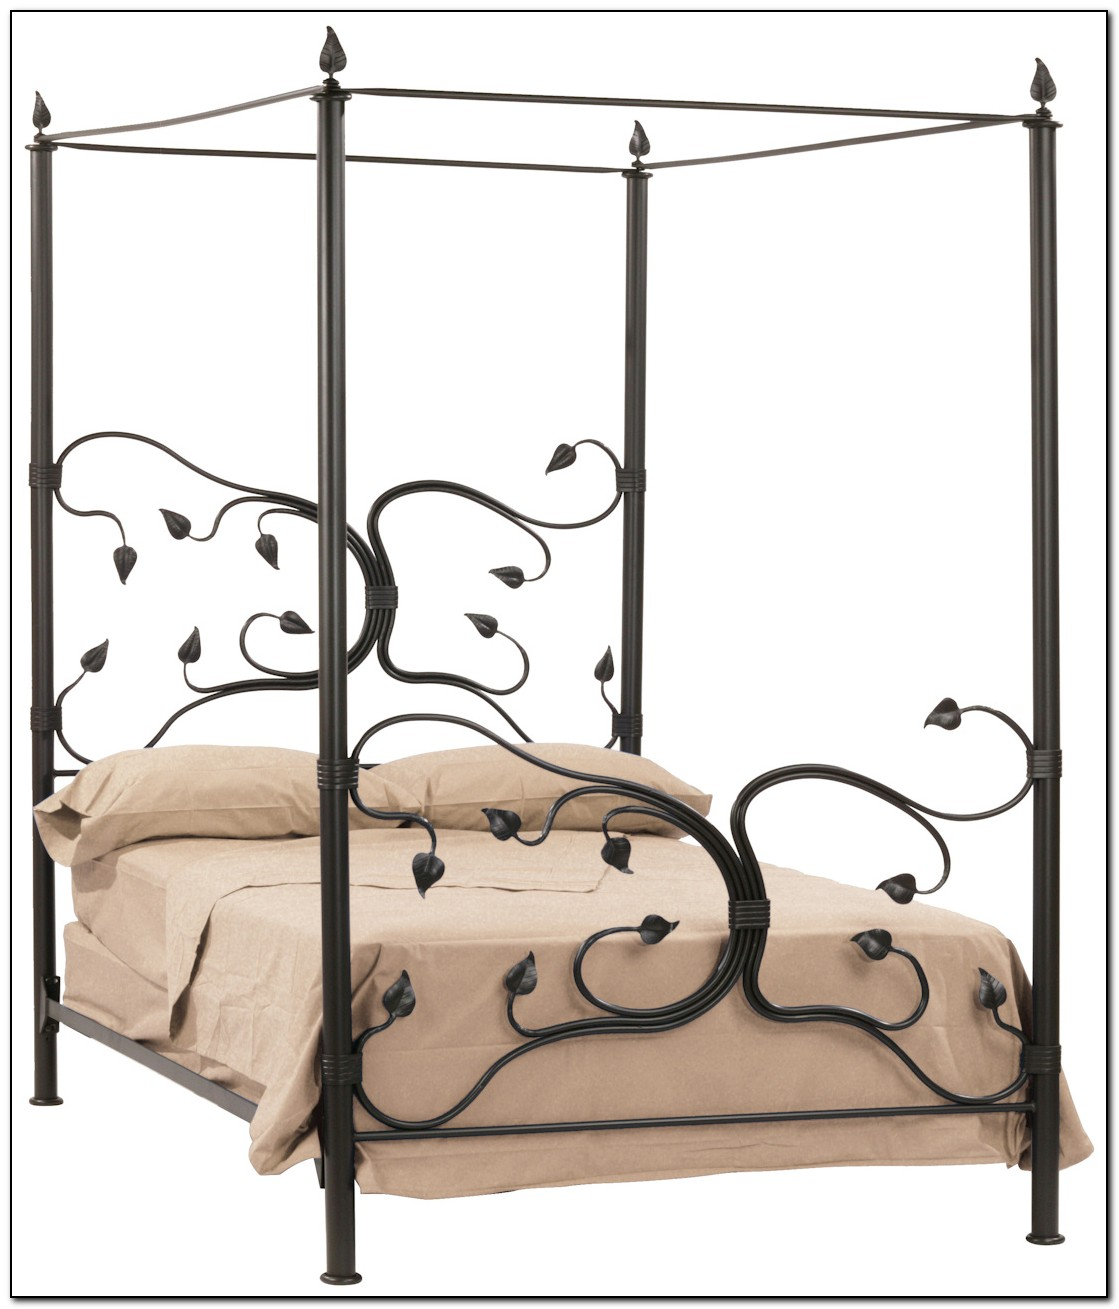 Wrought Iron Canopy Bed Frame